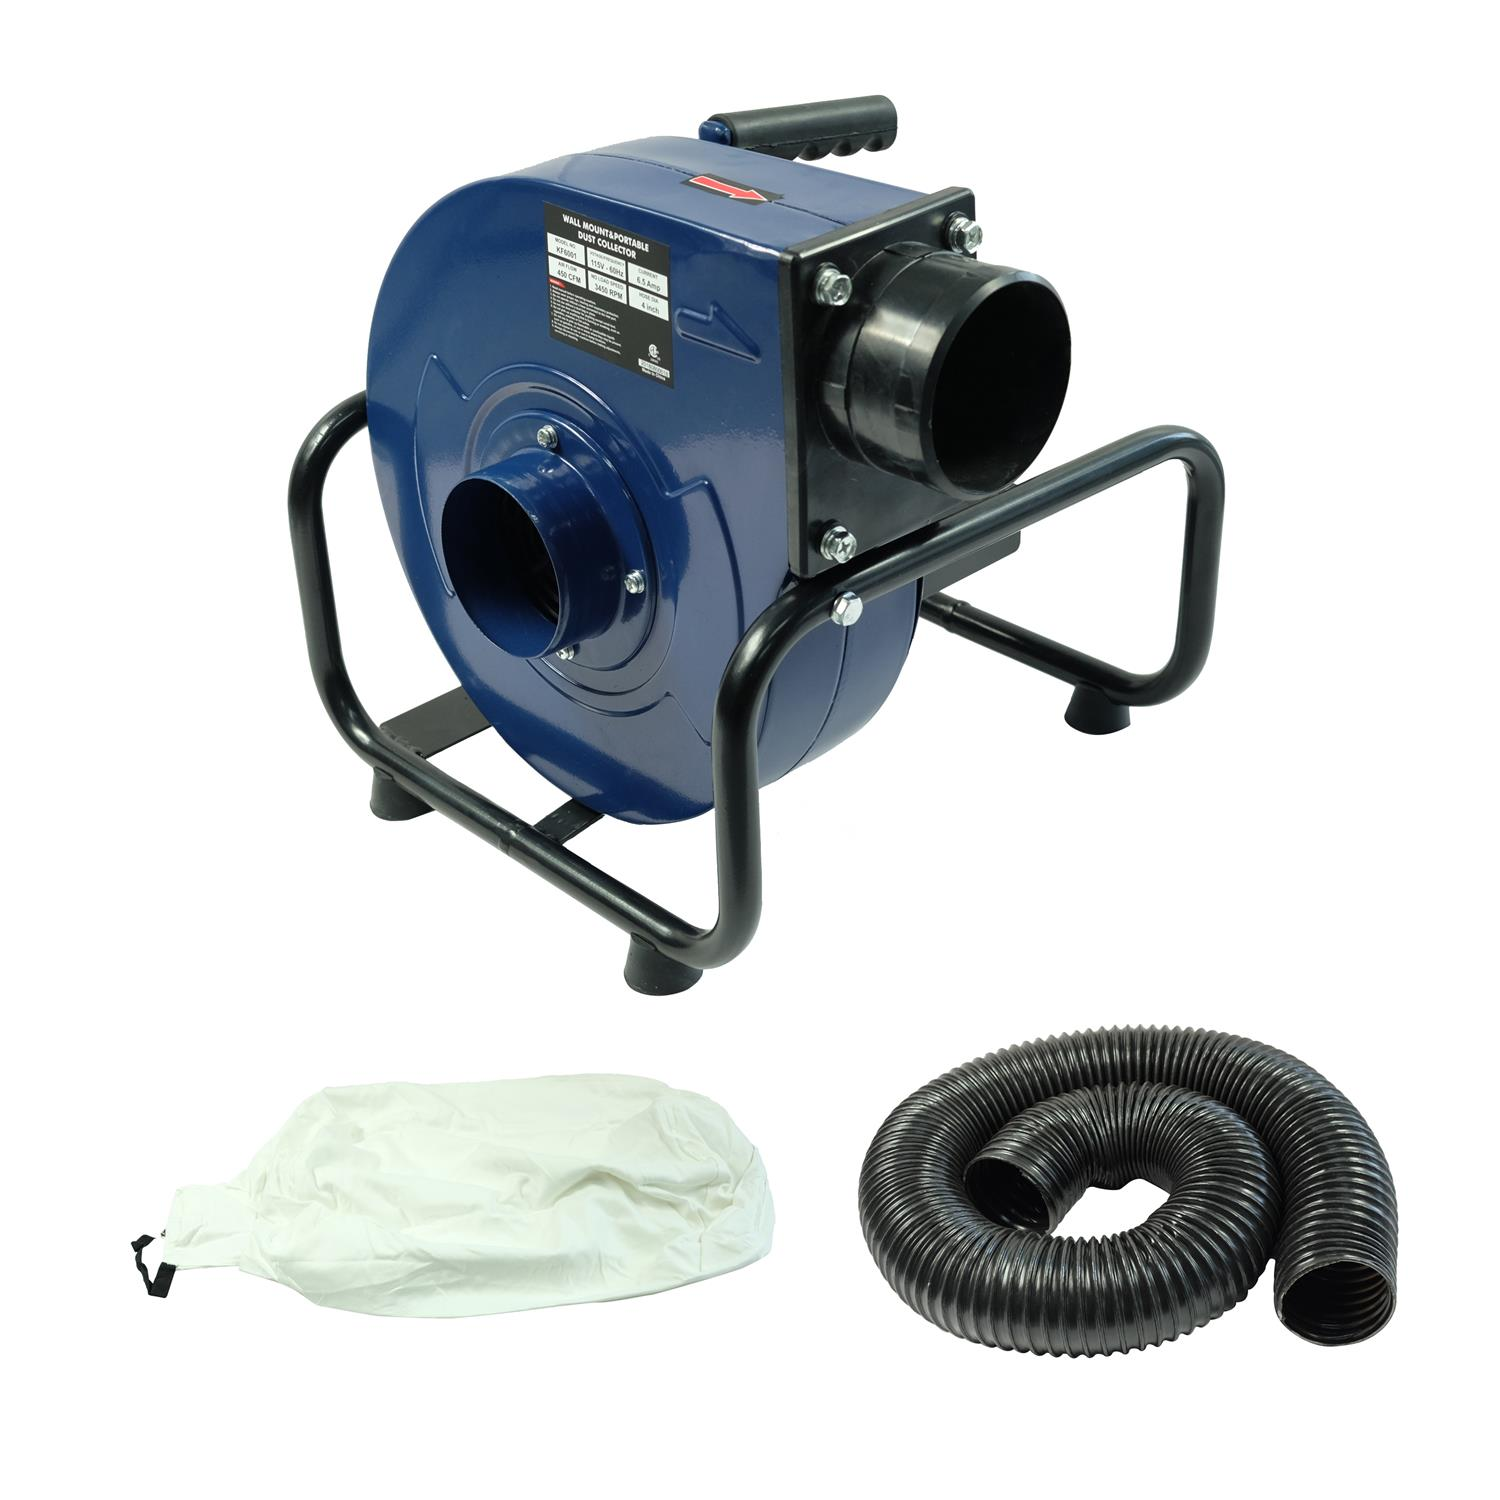 DC450 Portable Dust Collector